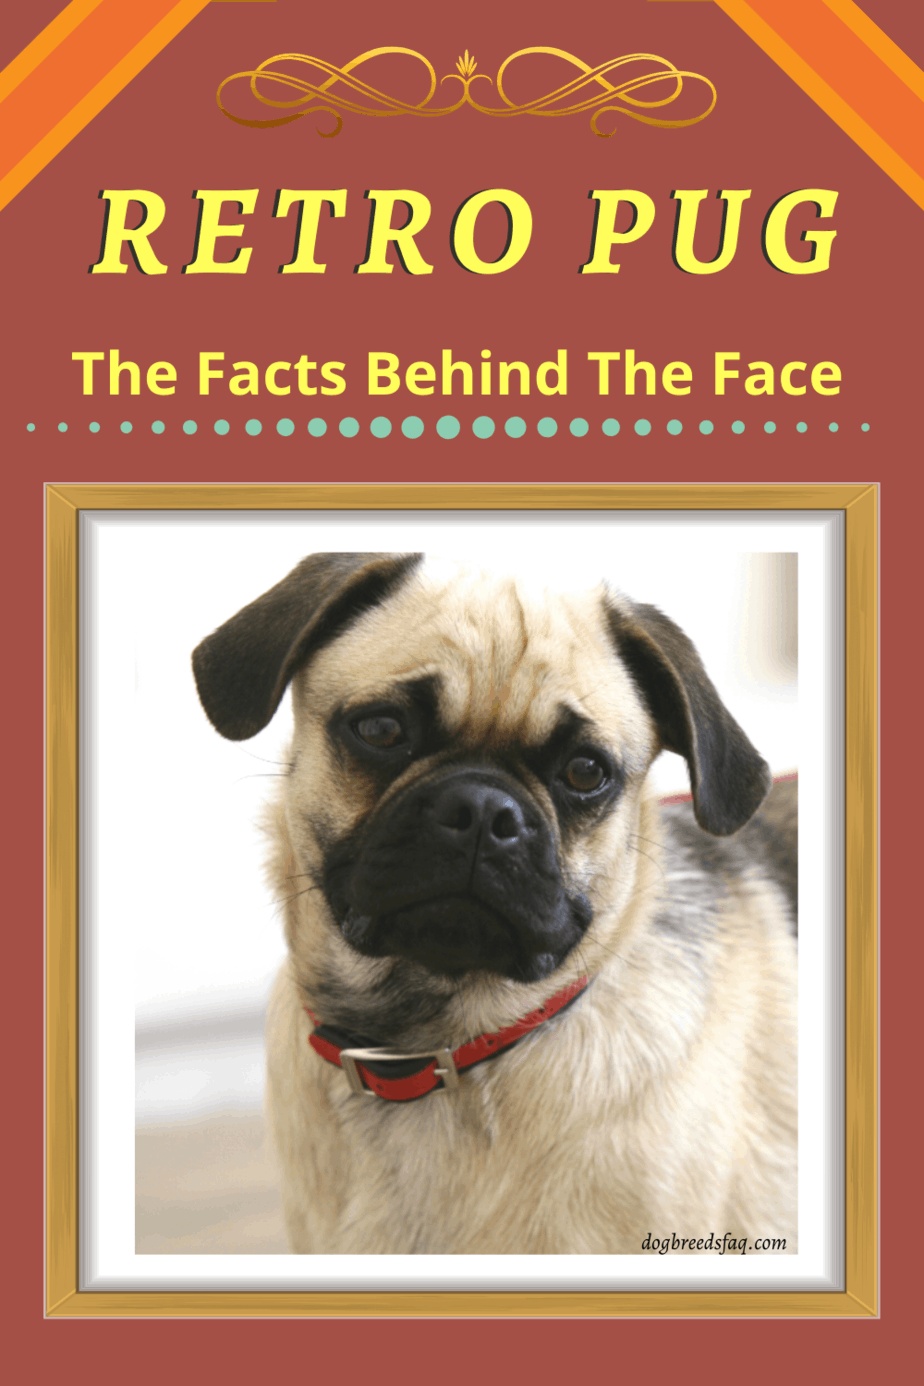 RETRO PUG pinterest pin